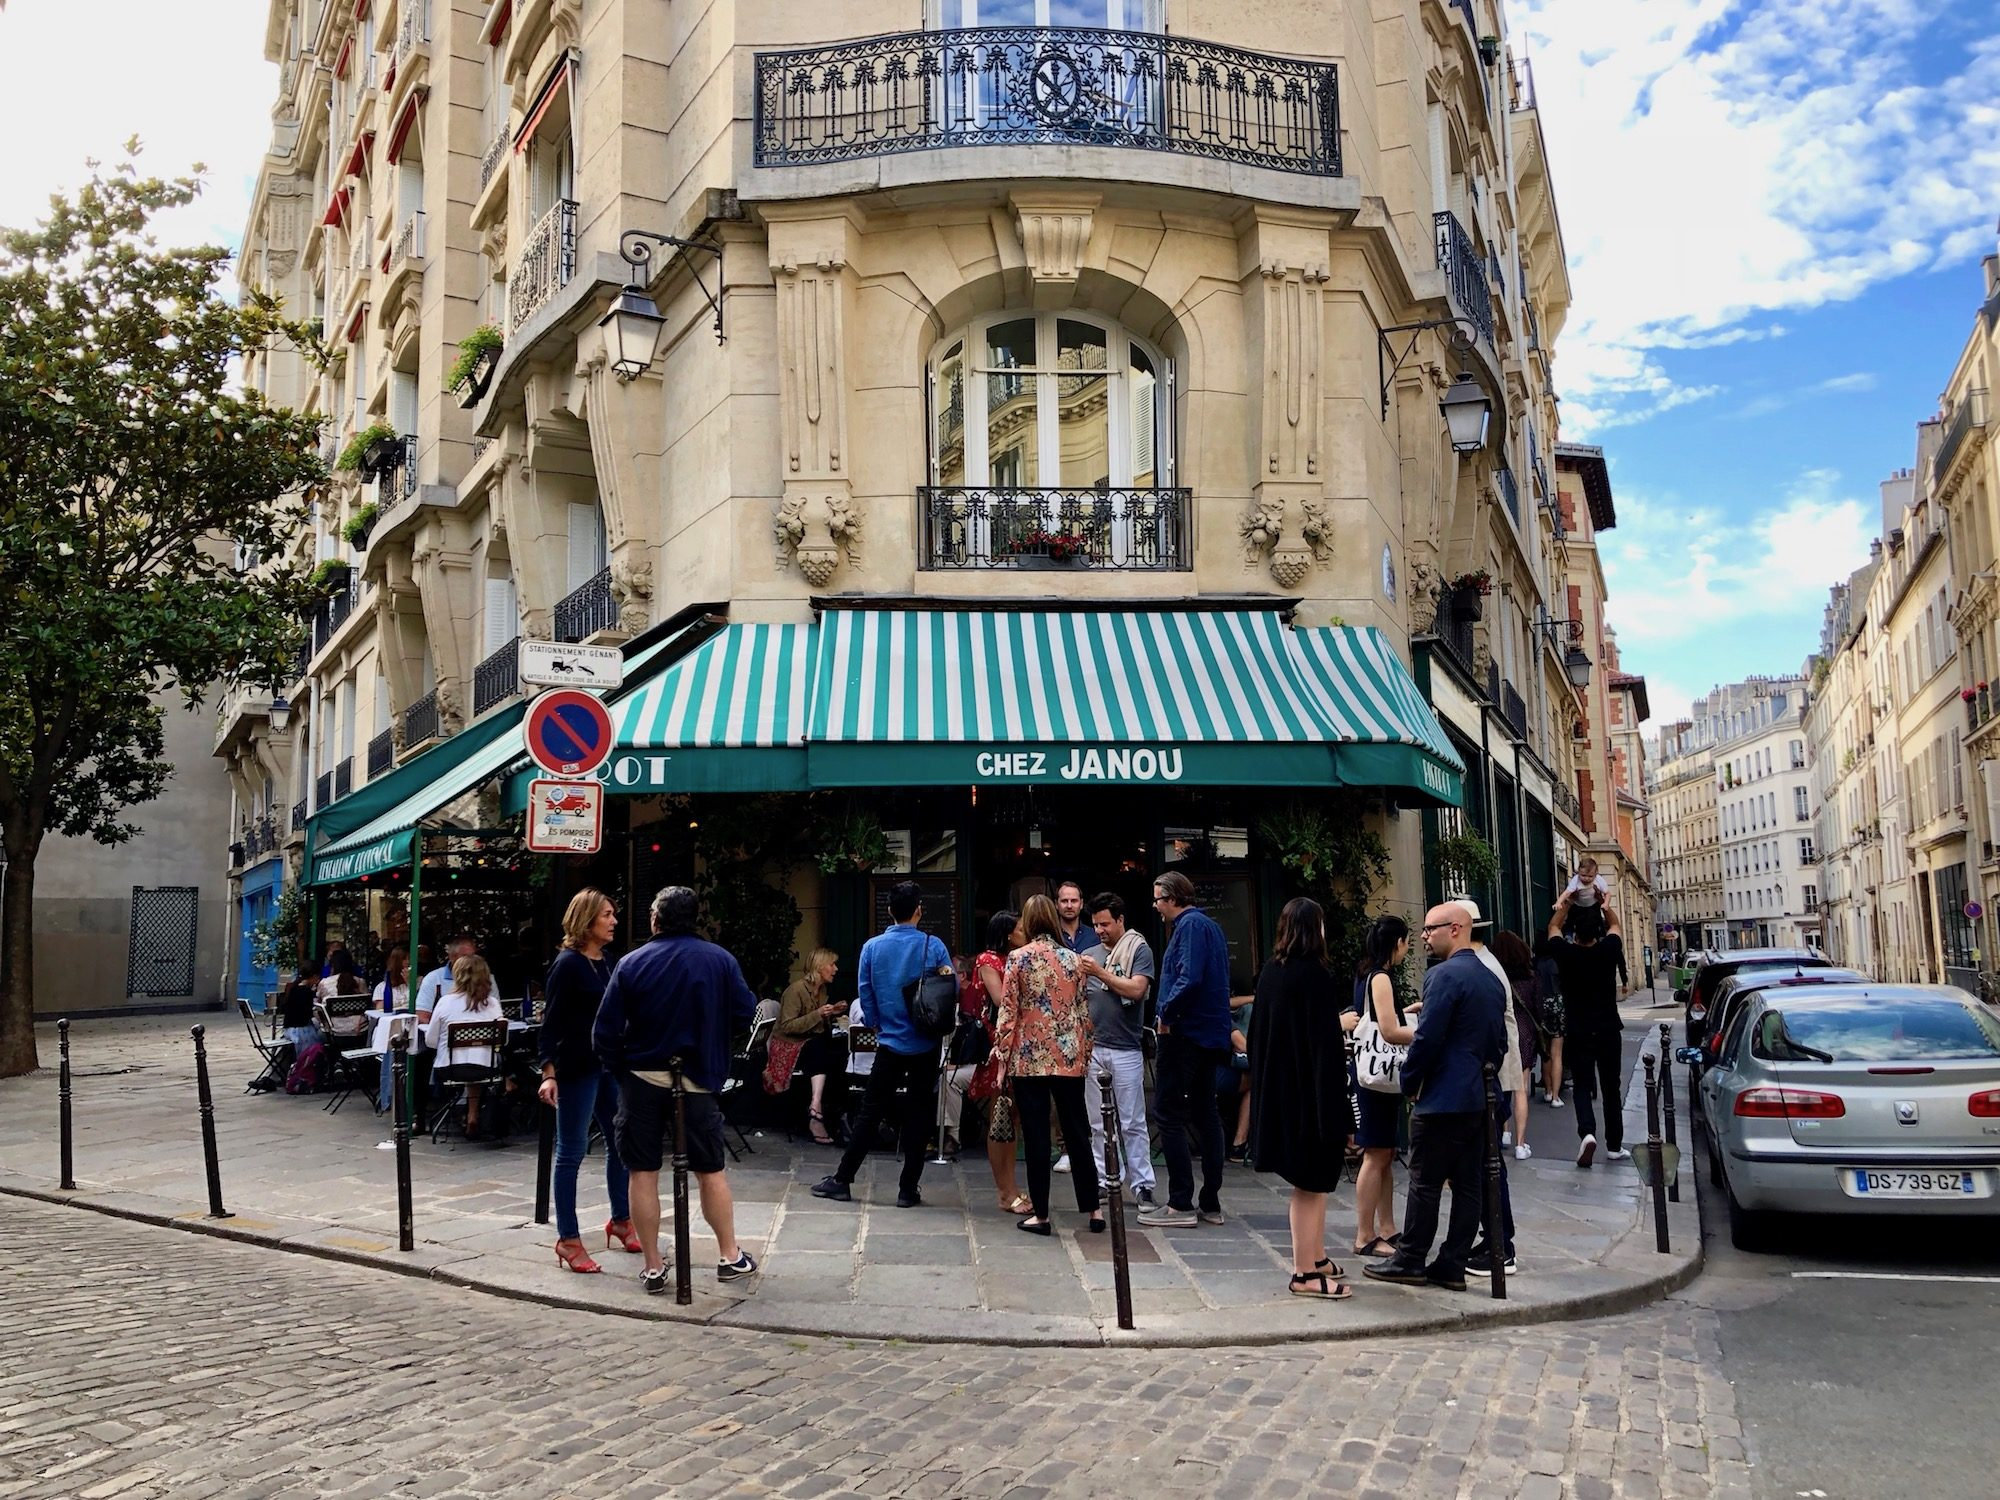 Chez Janou Restaurant in Paris is a local favorite for its classic French food and bistro interiors.